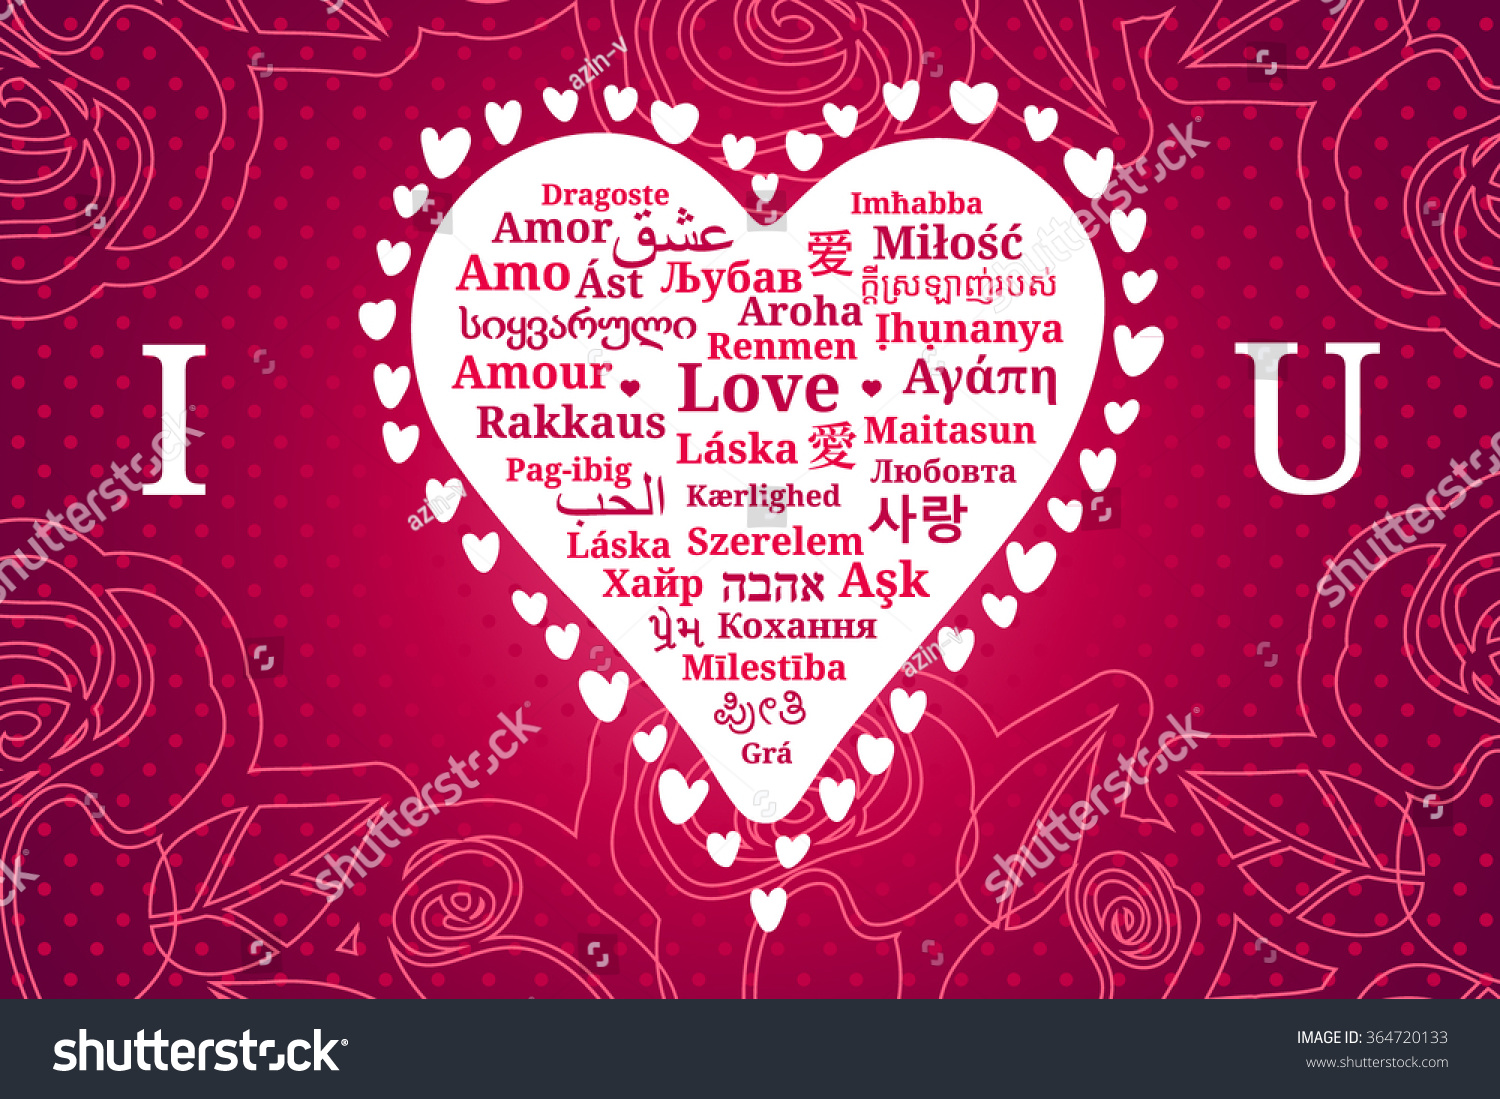 Greeting card i love you heart stock vector hd royalty free greeting card i love you with heart consists of words love in the different m4hsunfo